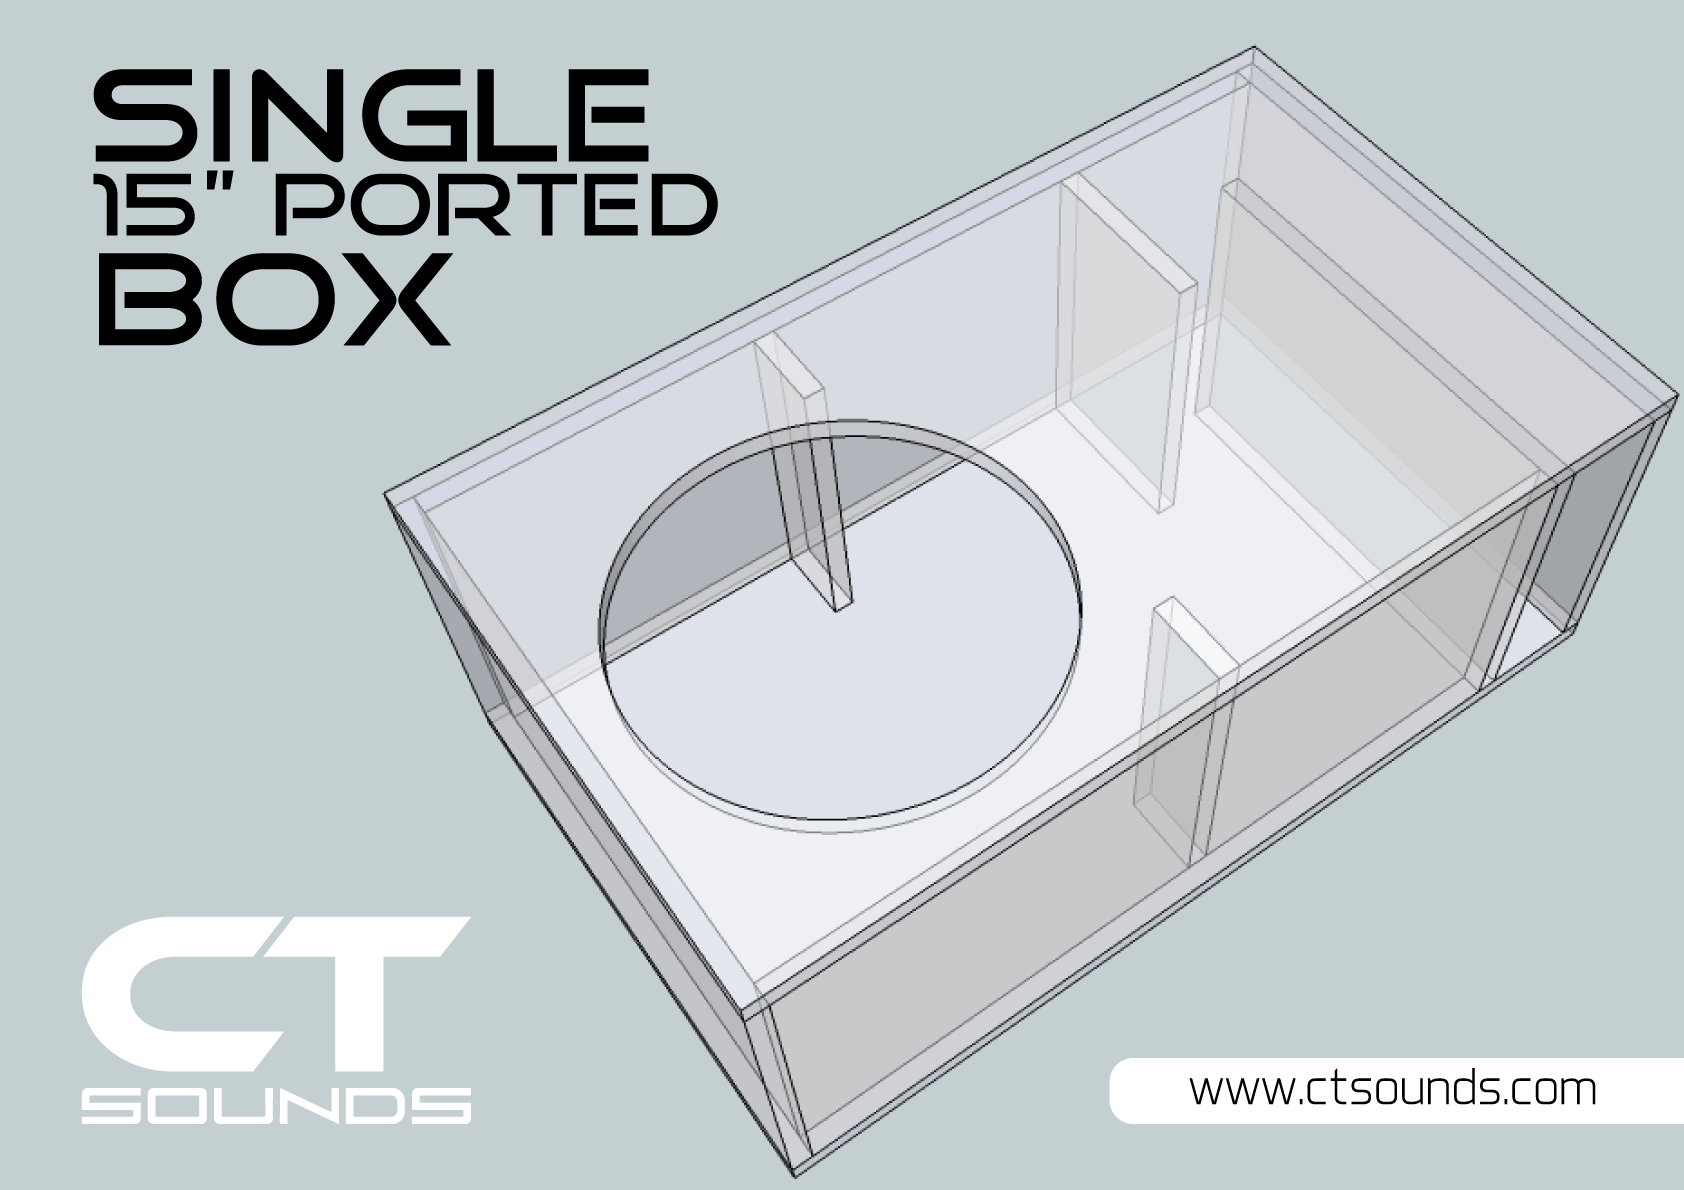 Dual 8 Inch Ported Subwoofer Box Design In 2020 Subwoofer Box Design Subwoofer Box Diy Subwoofer Box